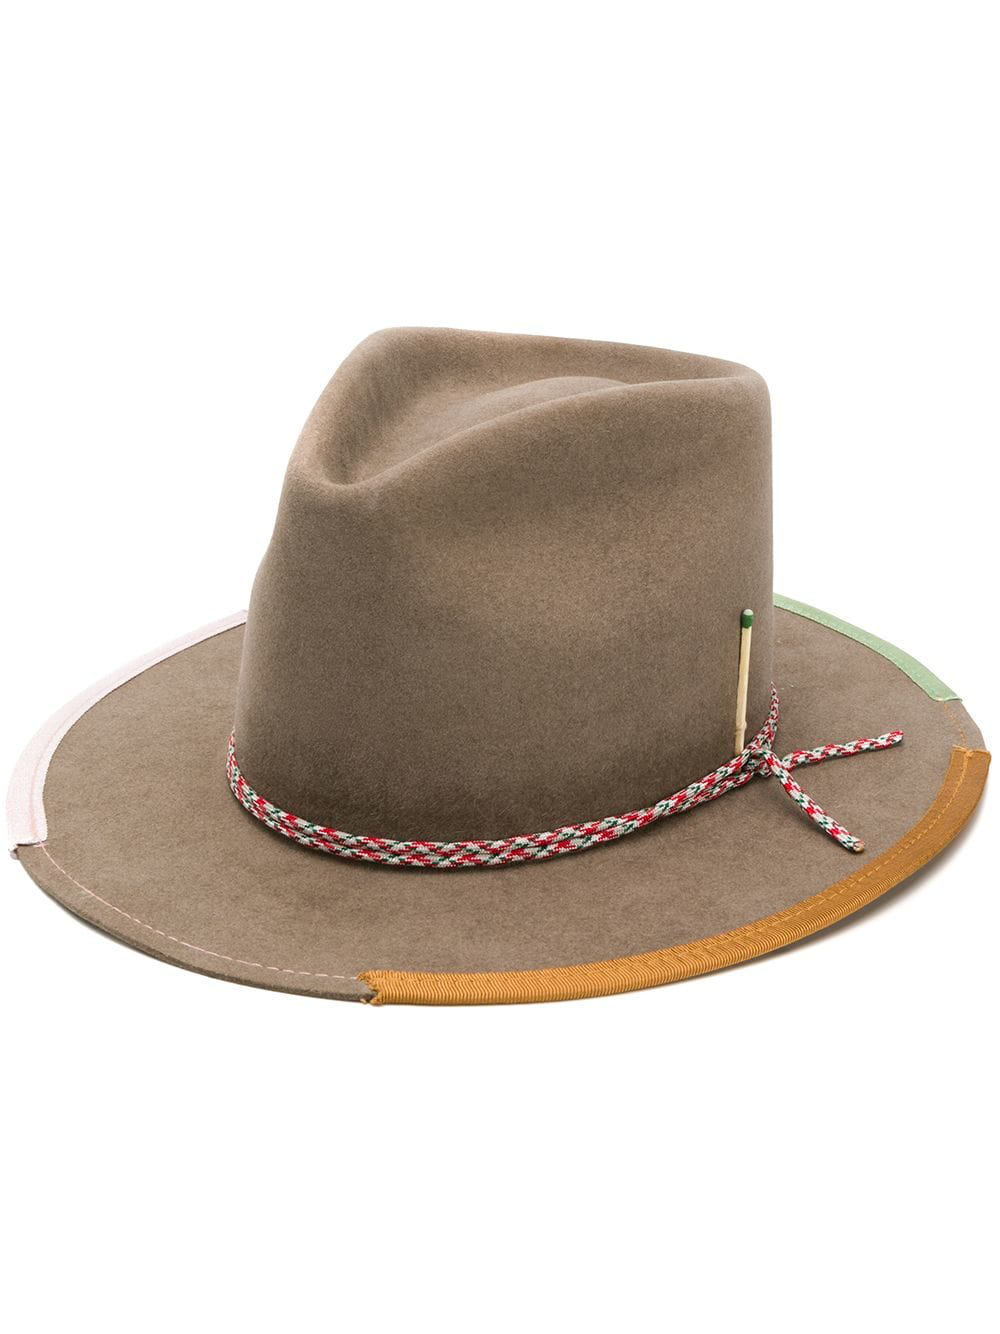 Nick Fouquet Donjr Hat - Neutrals In Natural